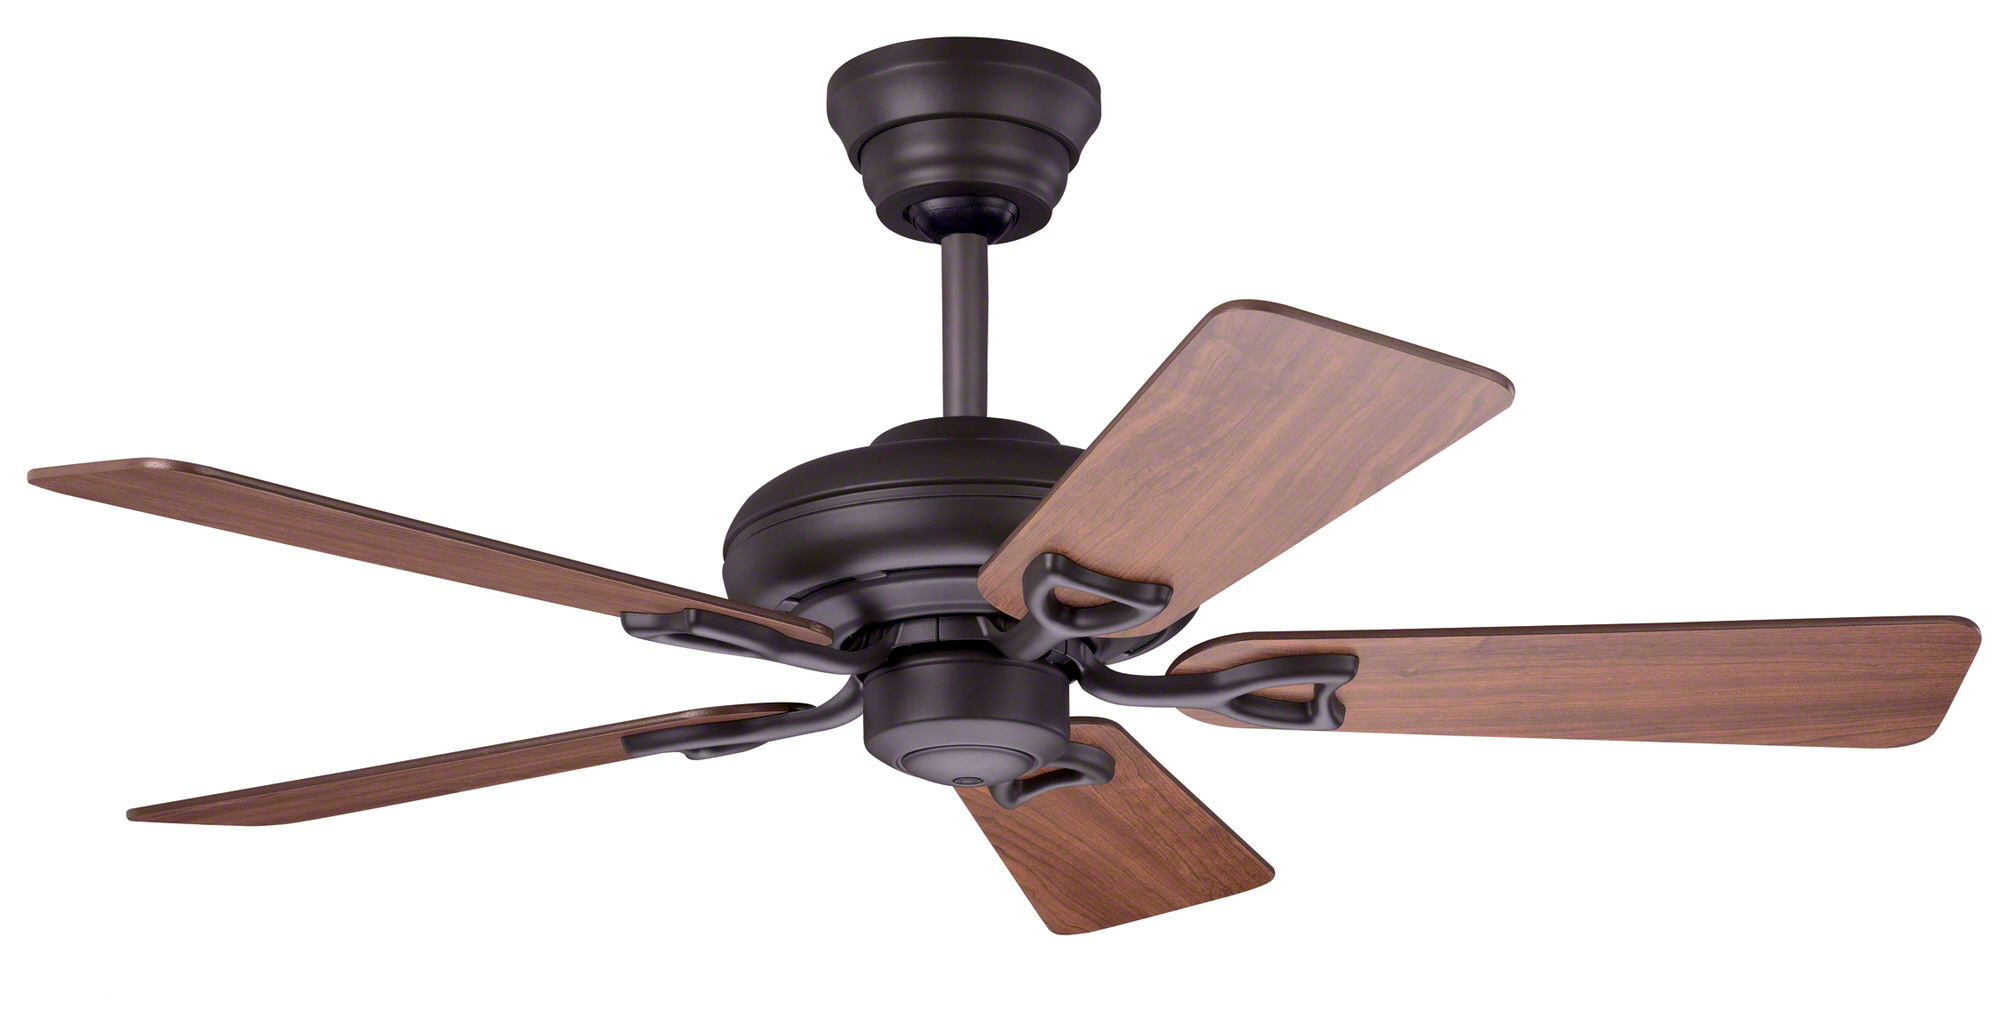 Hunter seville ii ceiling fan - Pictures of ceiling fans ...